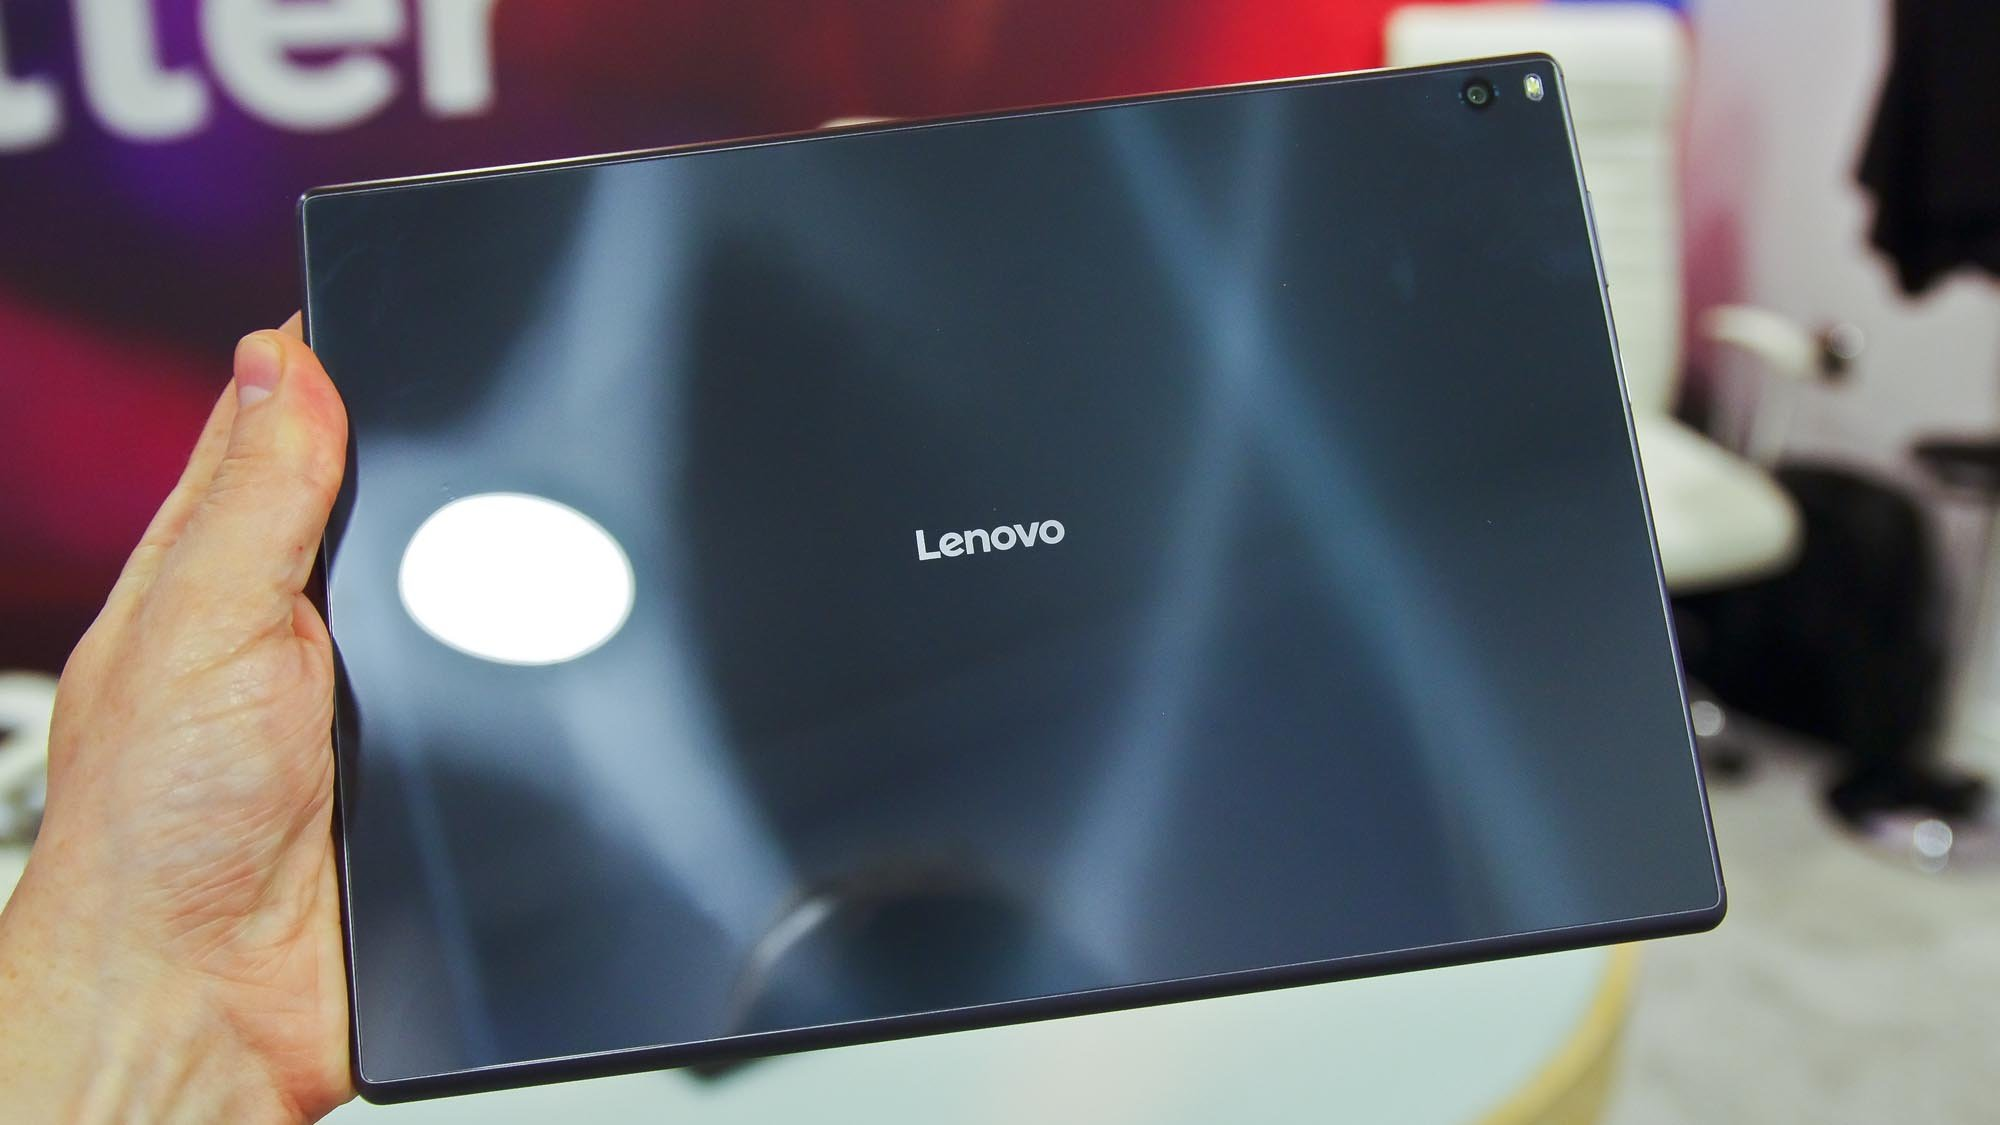 Lenovo Tab 4 10 review: Lenovo's 10in tablet surfaces at MWC